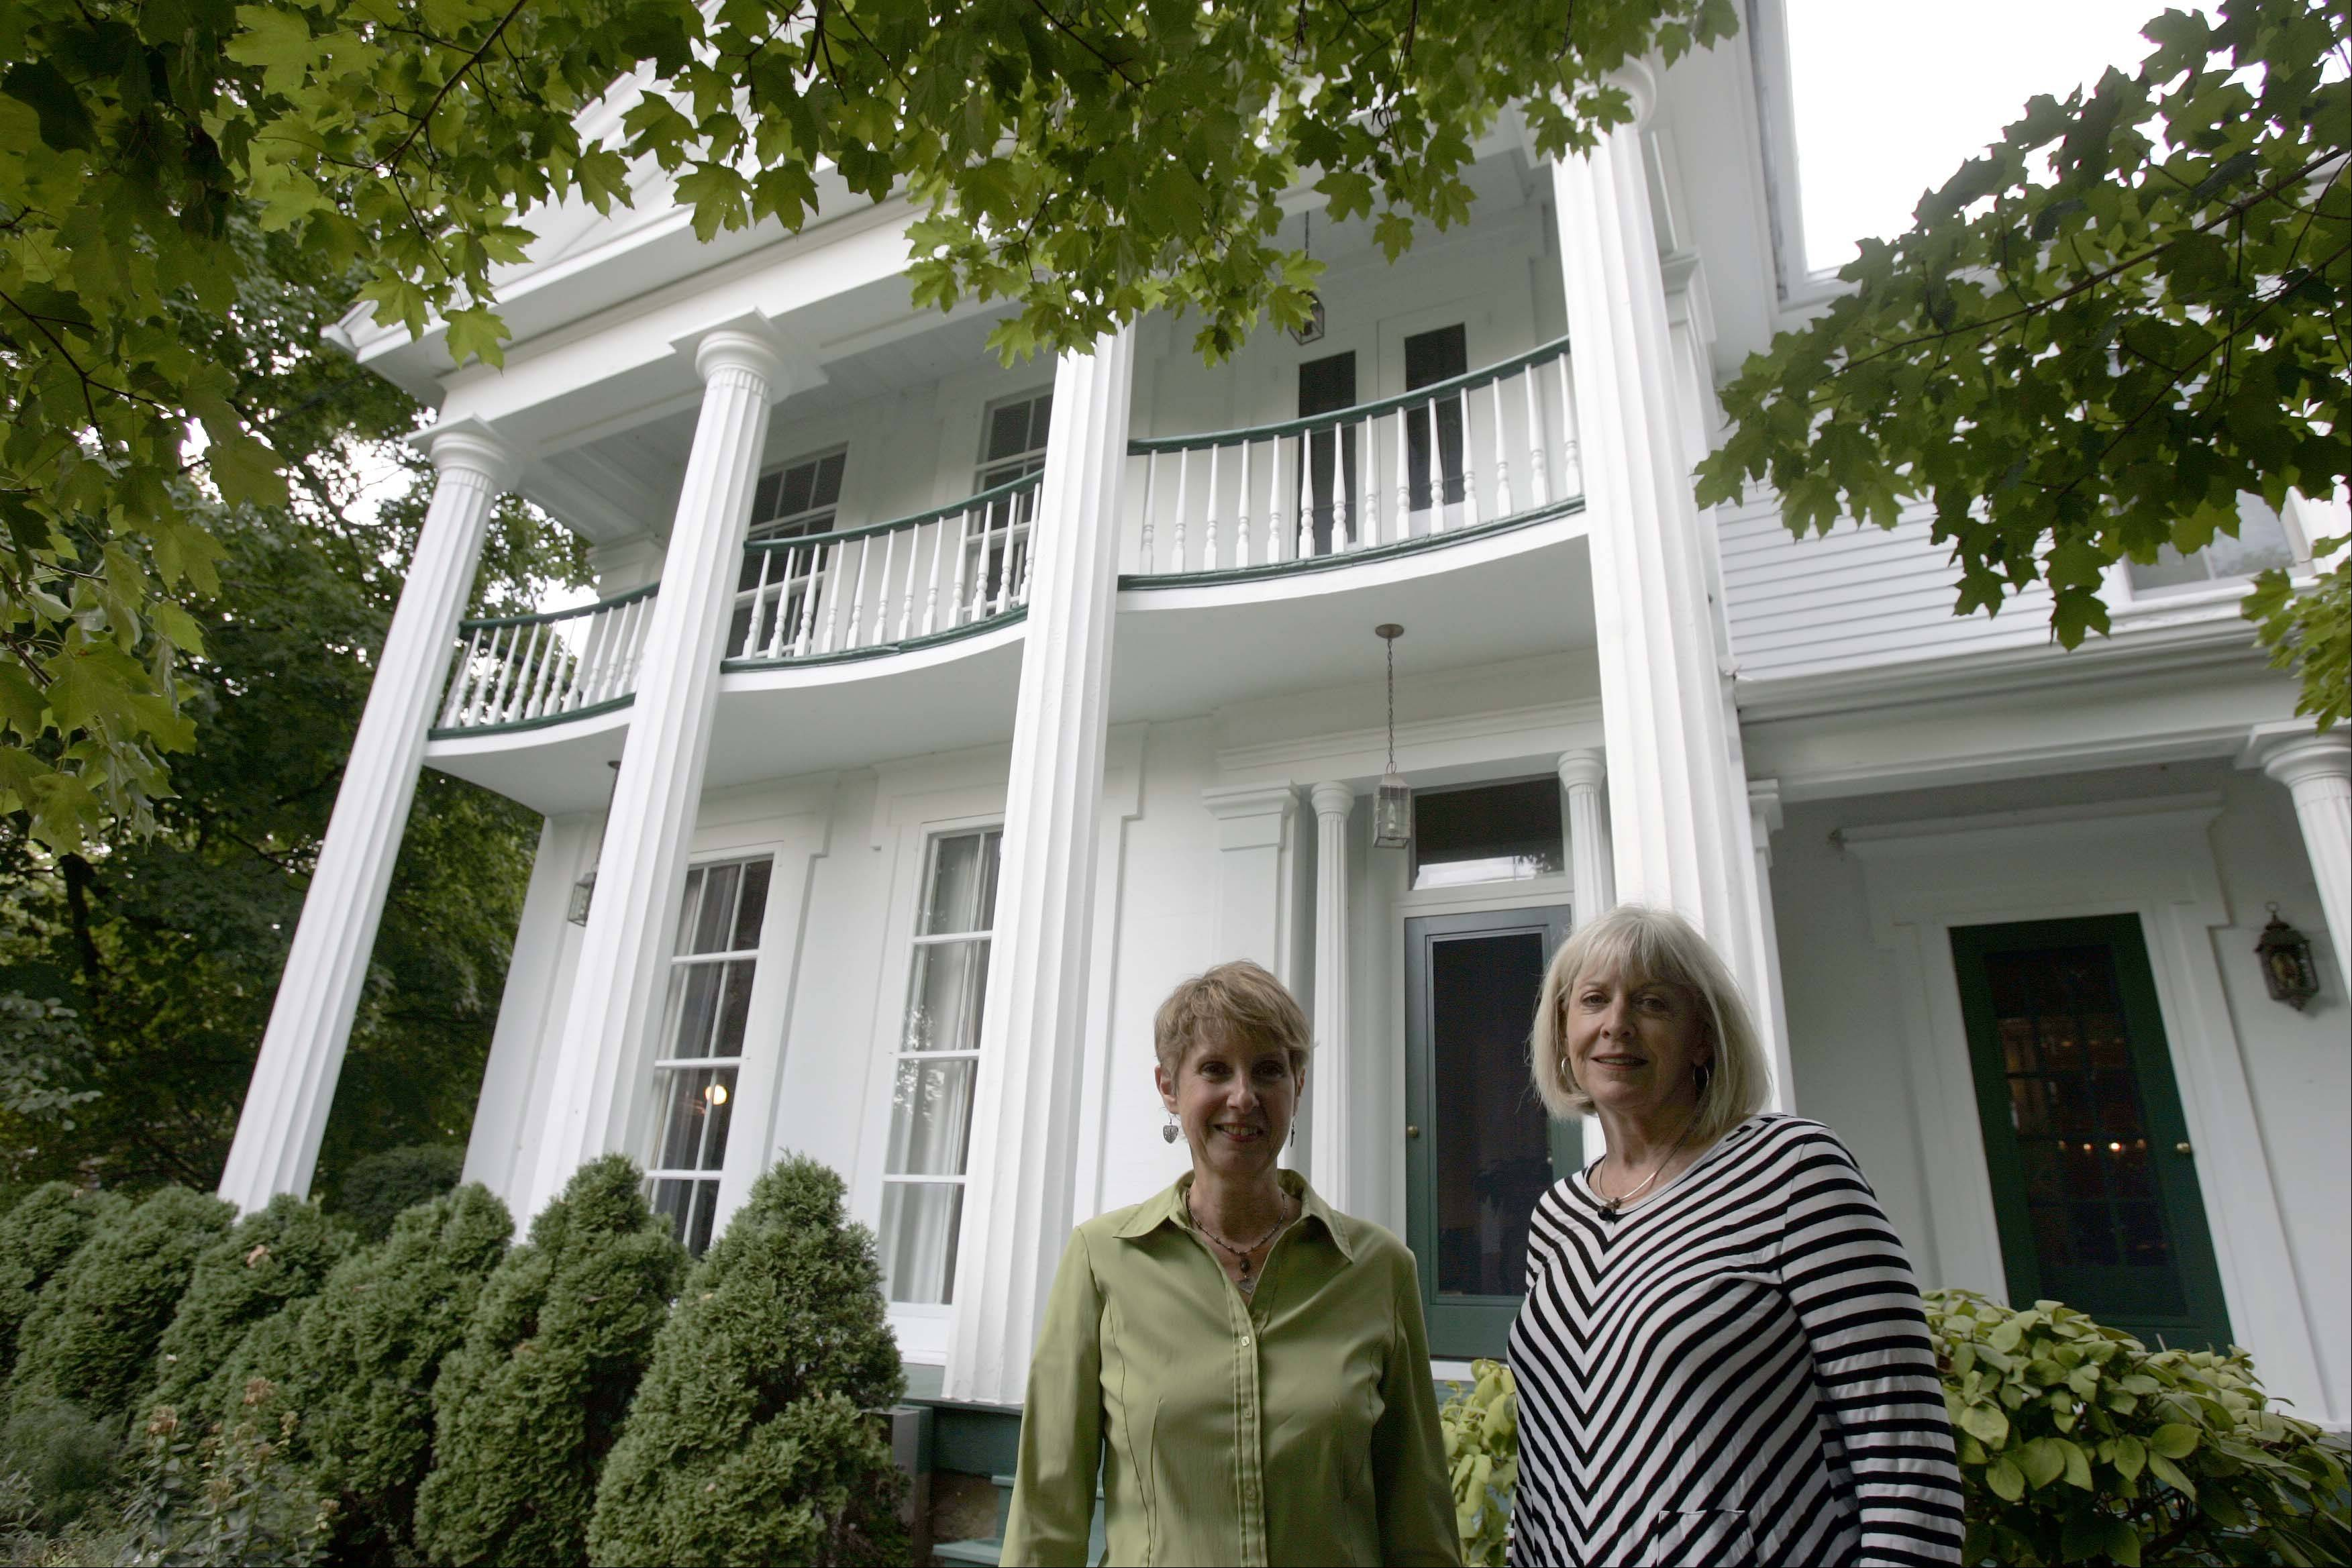 Tour guides Linda Winans, left, and Pat Pretz, both of St. Charles, outside the 1859 home built for two-time Mayor Dr. James Lewis on Fifth Street in St. Charles. The home is one of the most elegant examples of Greek Revival architecture on the tour.